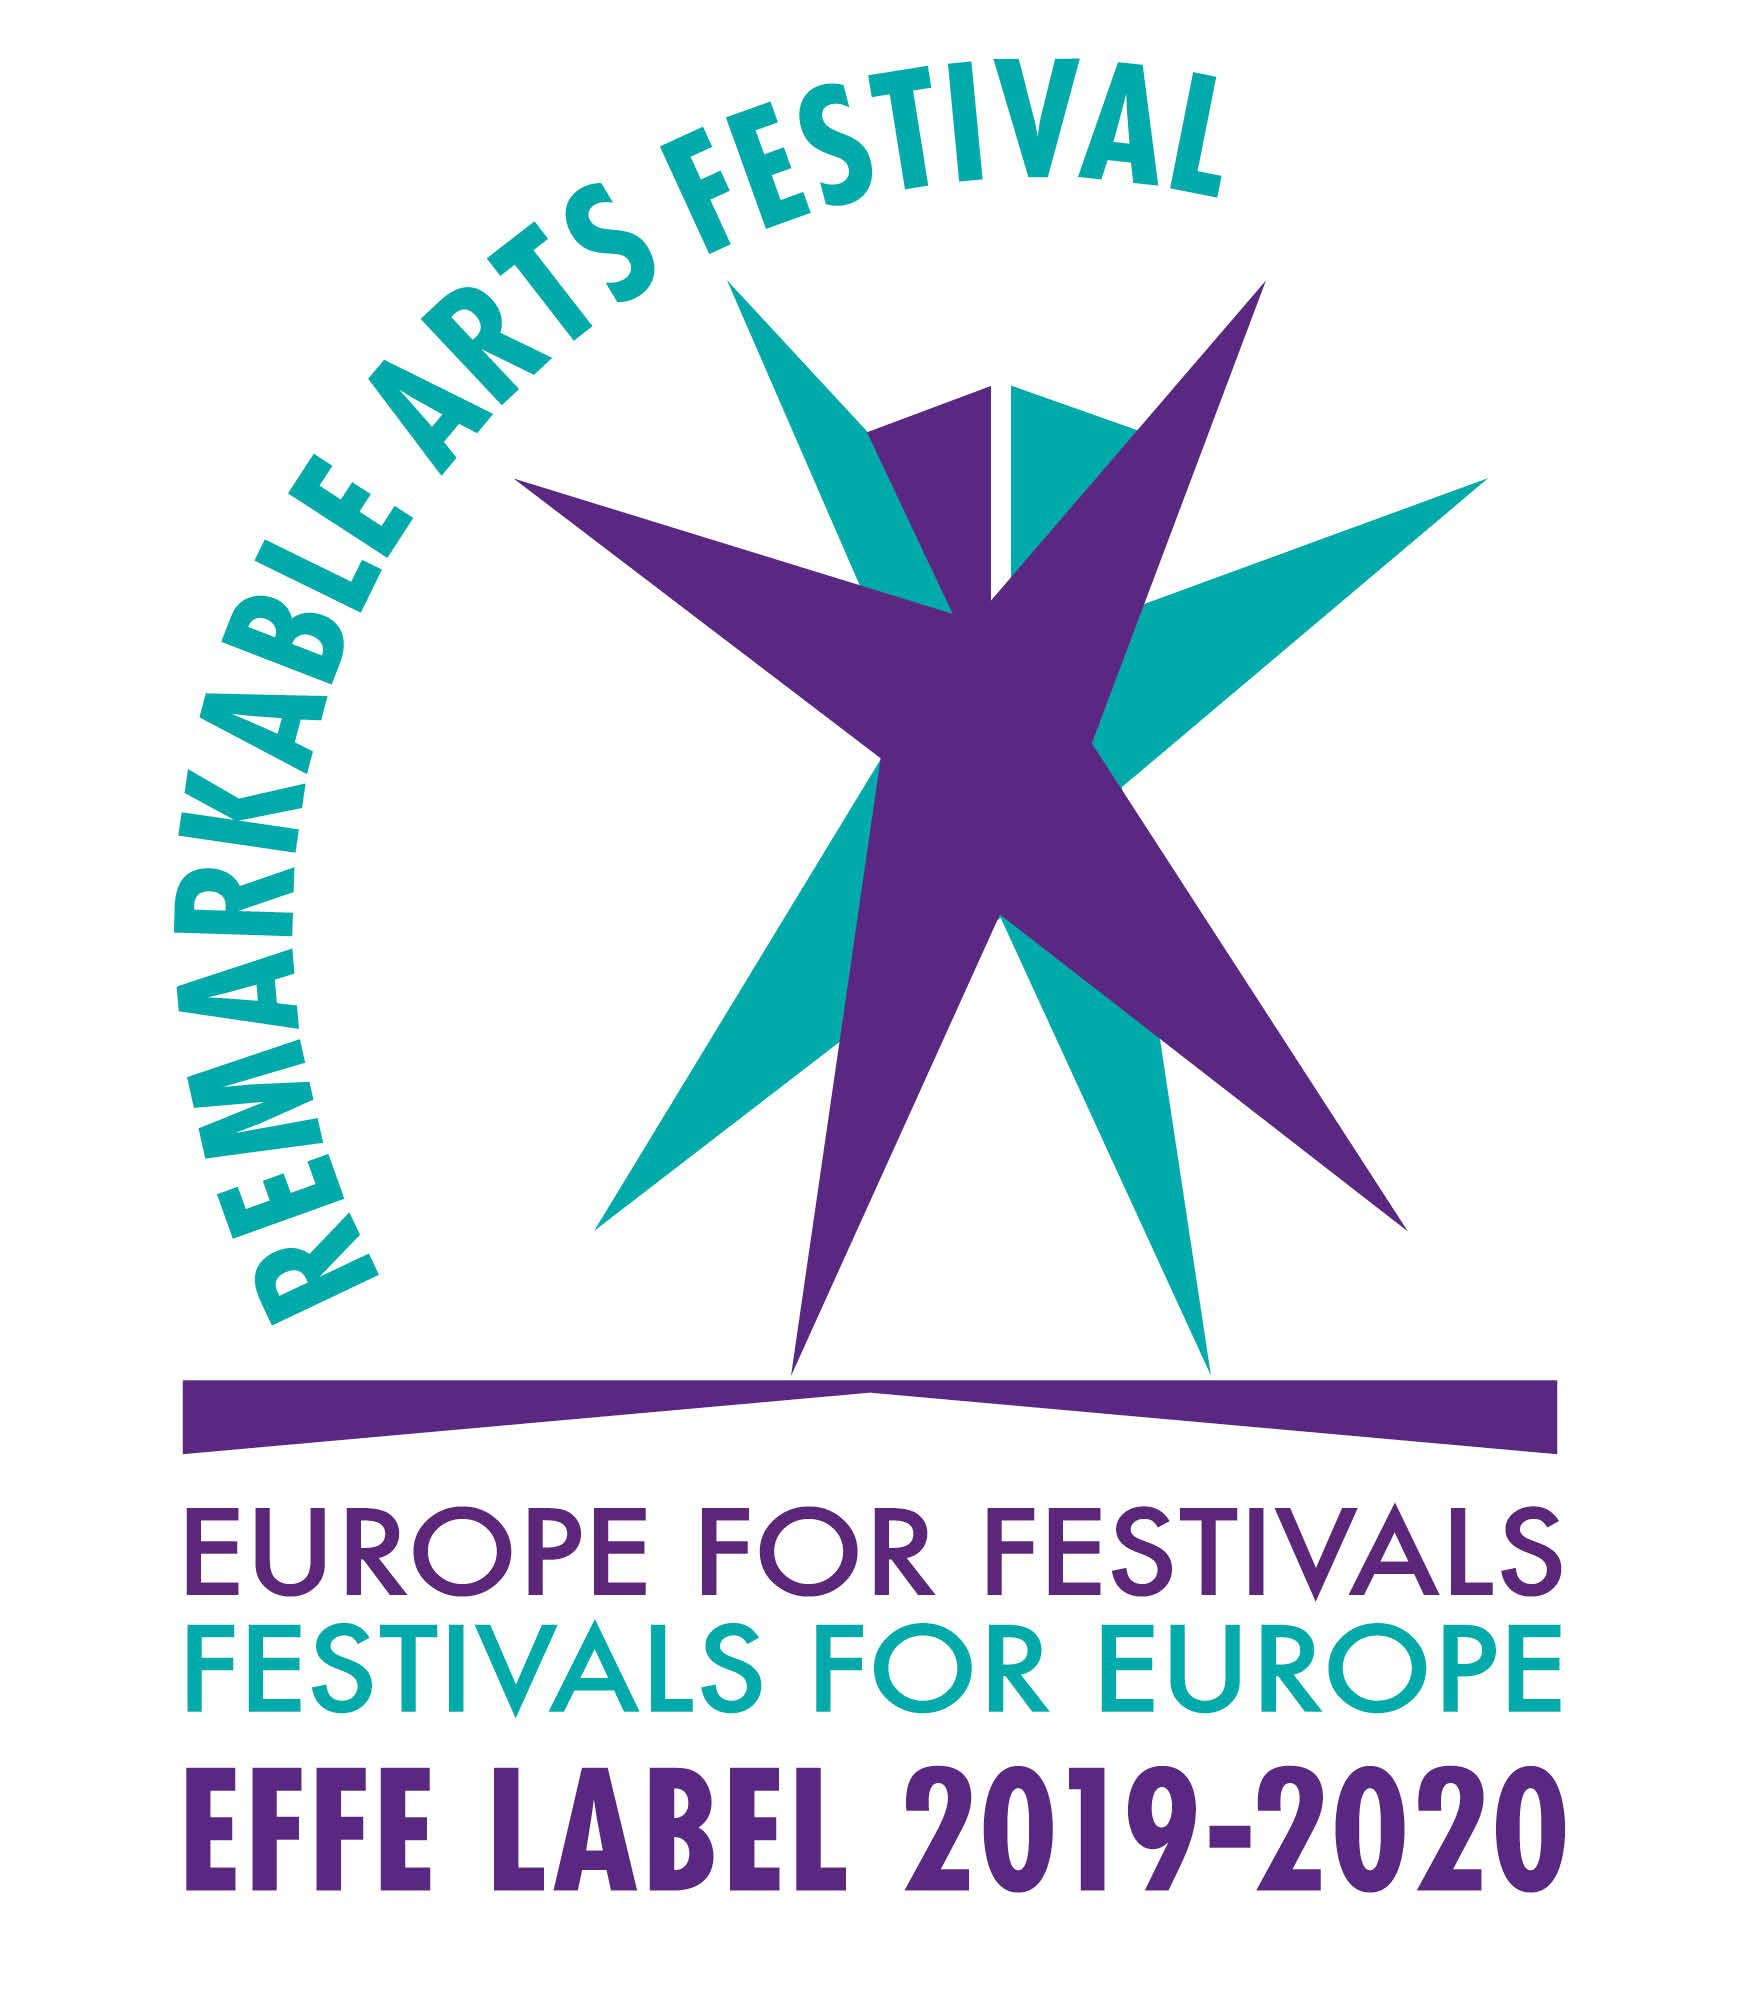 Effe Label 2019 2020